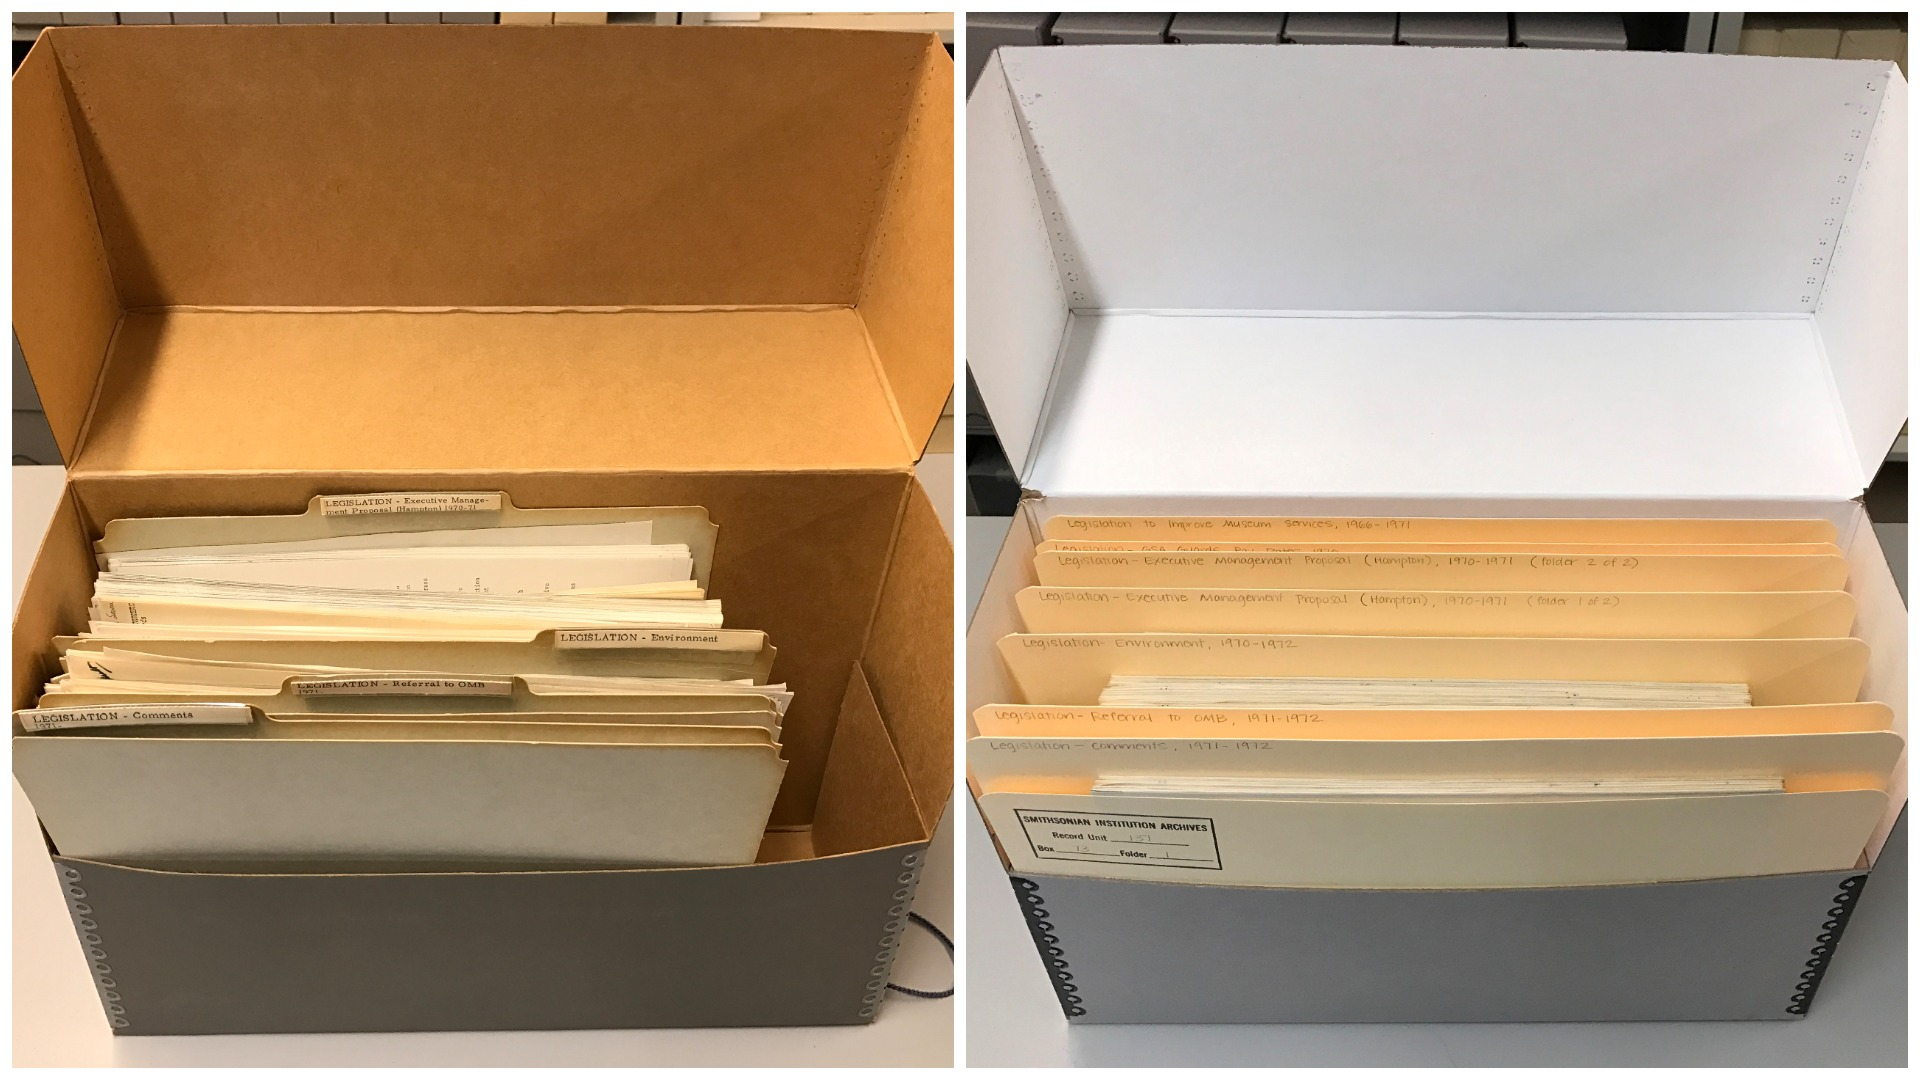 Two archival boxes filled with beige folders